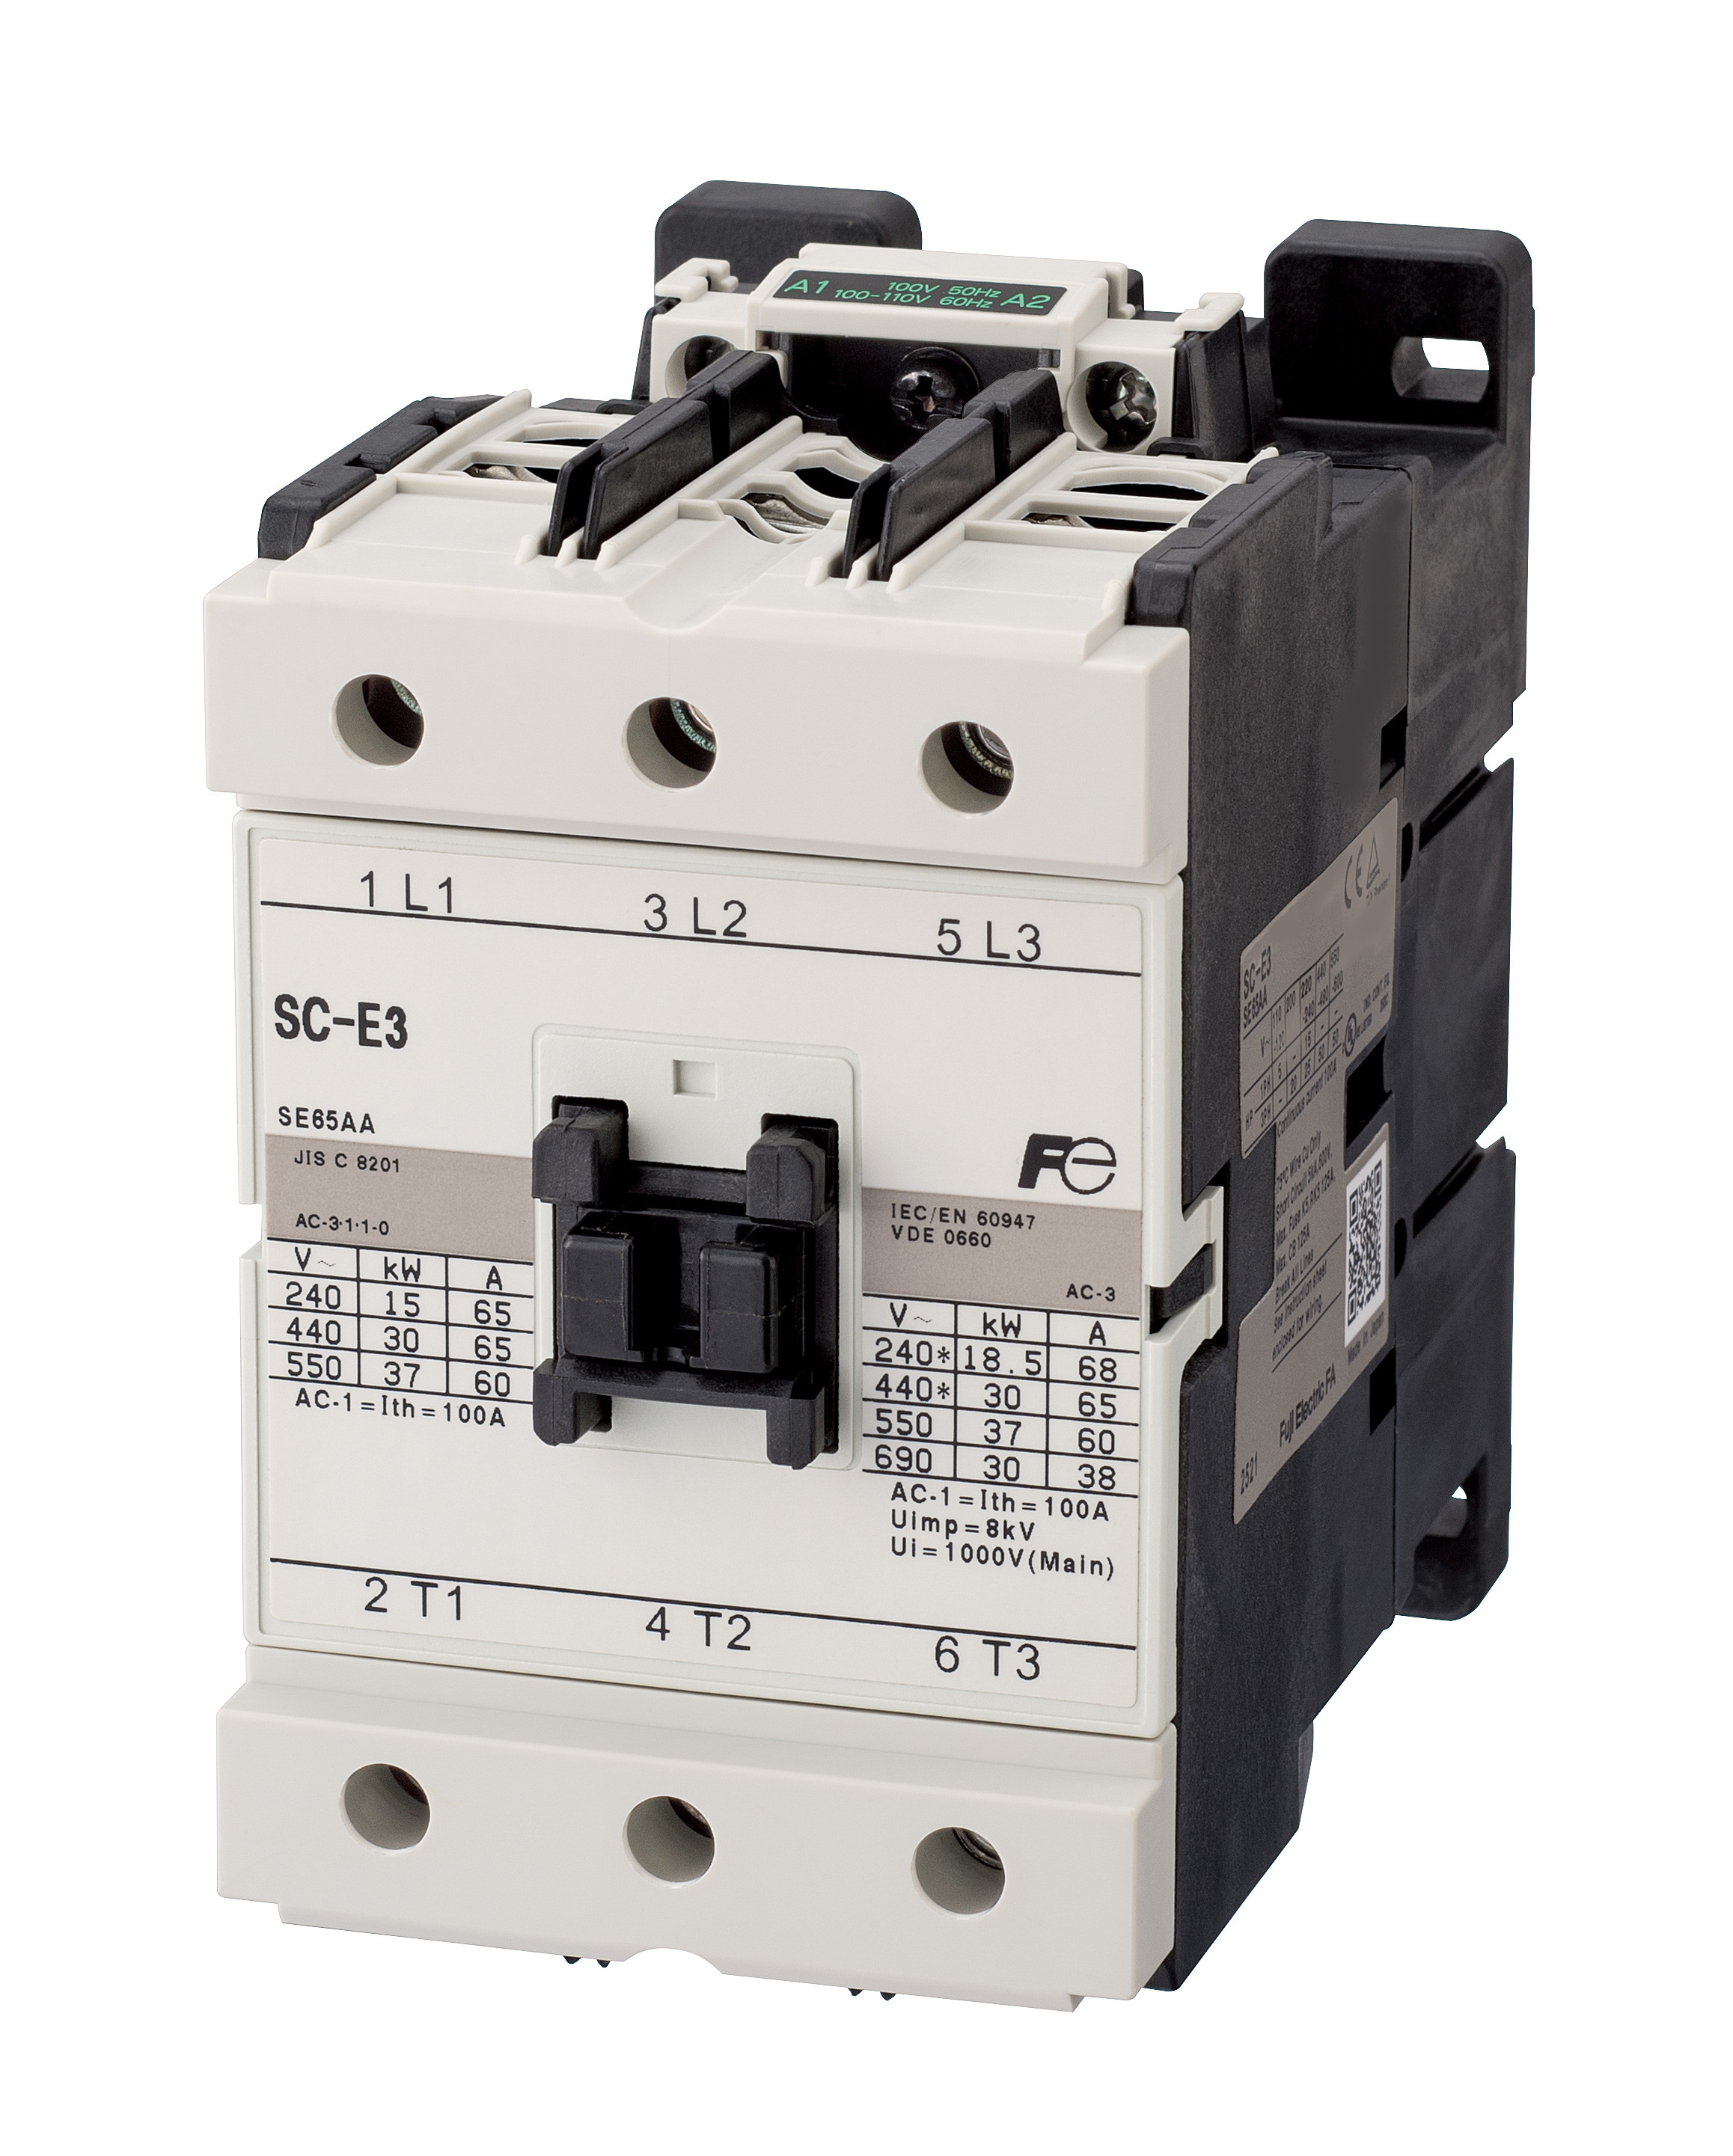 KKD13 168 power distribution & control devices industrial automation  at edmiracle.co